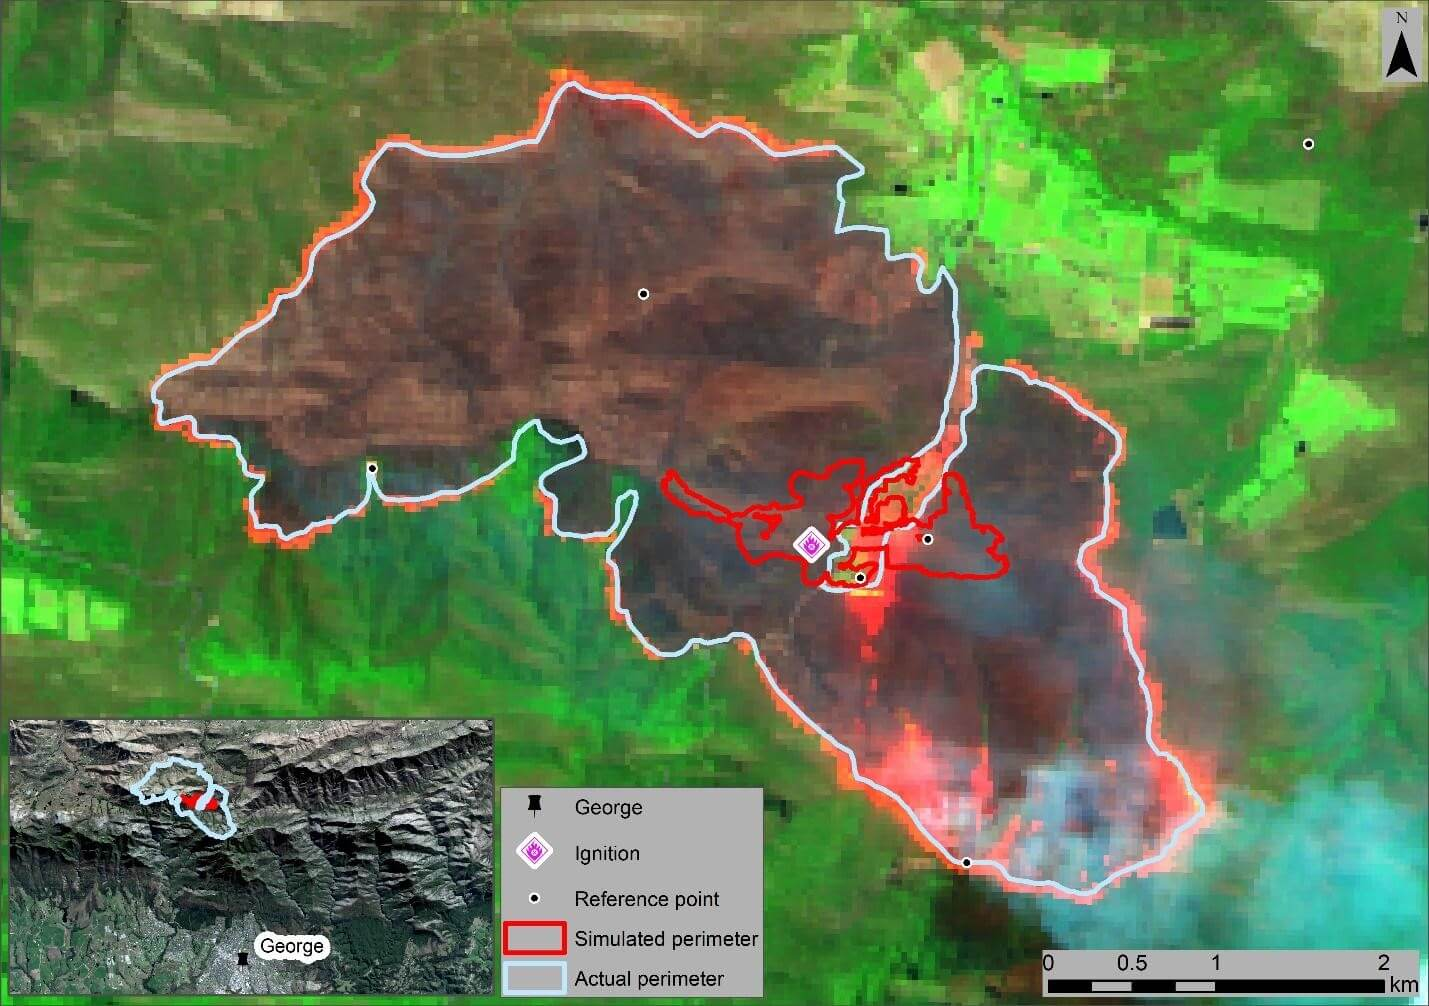 Figure 1 Predicted vs actual spread on the 25th of October 2018. The simulated perimeter is red, and the actual perimeter is light blue. Reference points used for the accuracy assessment are black dots with a white outline. The Sentinel-2 image, captured on 25 October 2018, is displayed as a Red, Green, Blue image where Red = Band 12, Green = Band 8A, and Blue = Band 4.